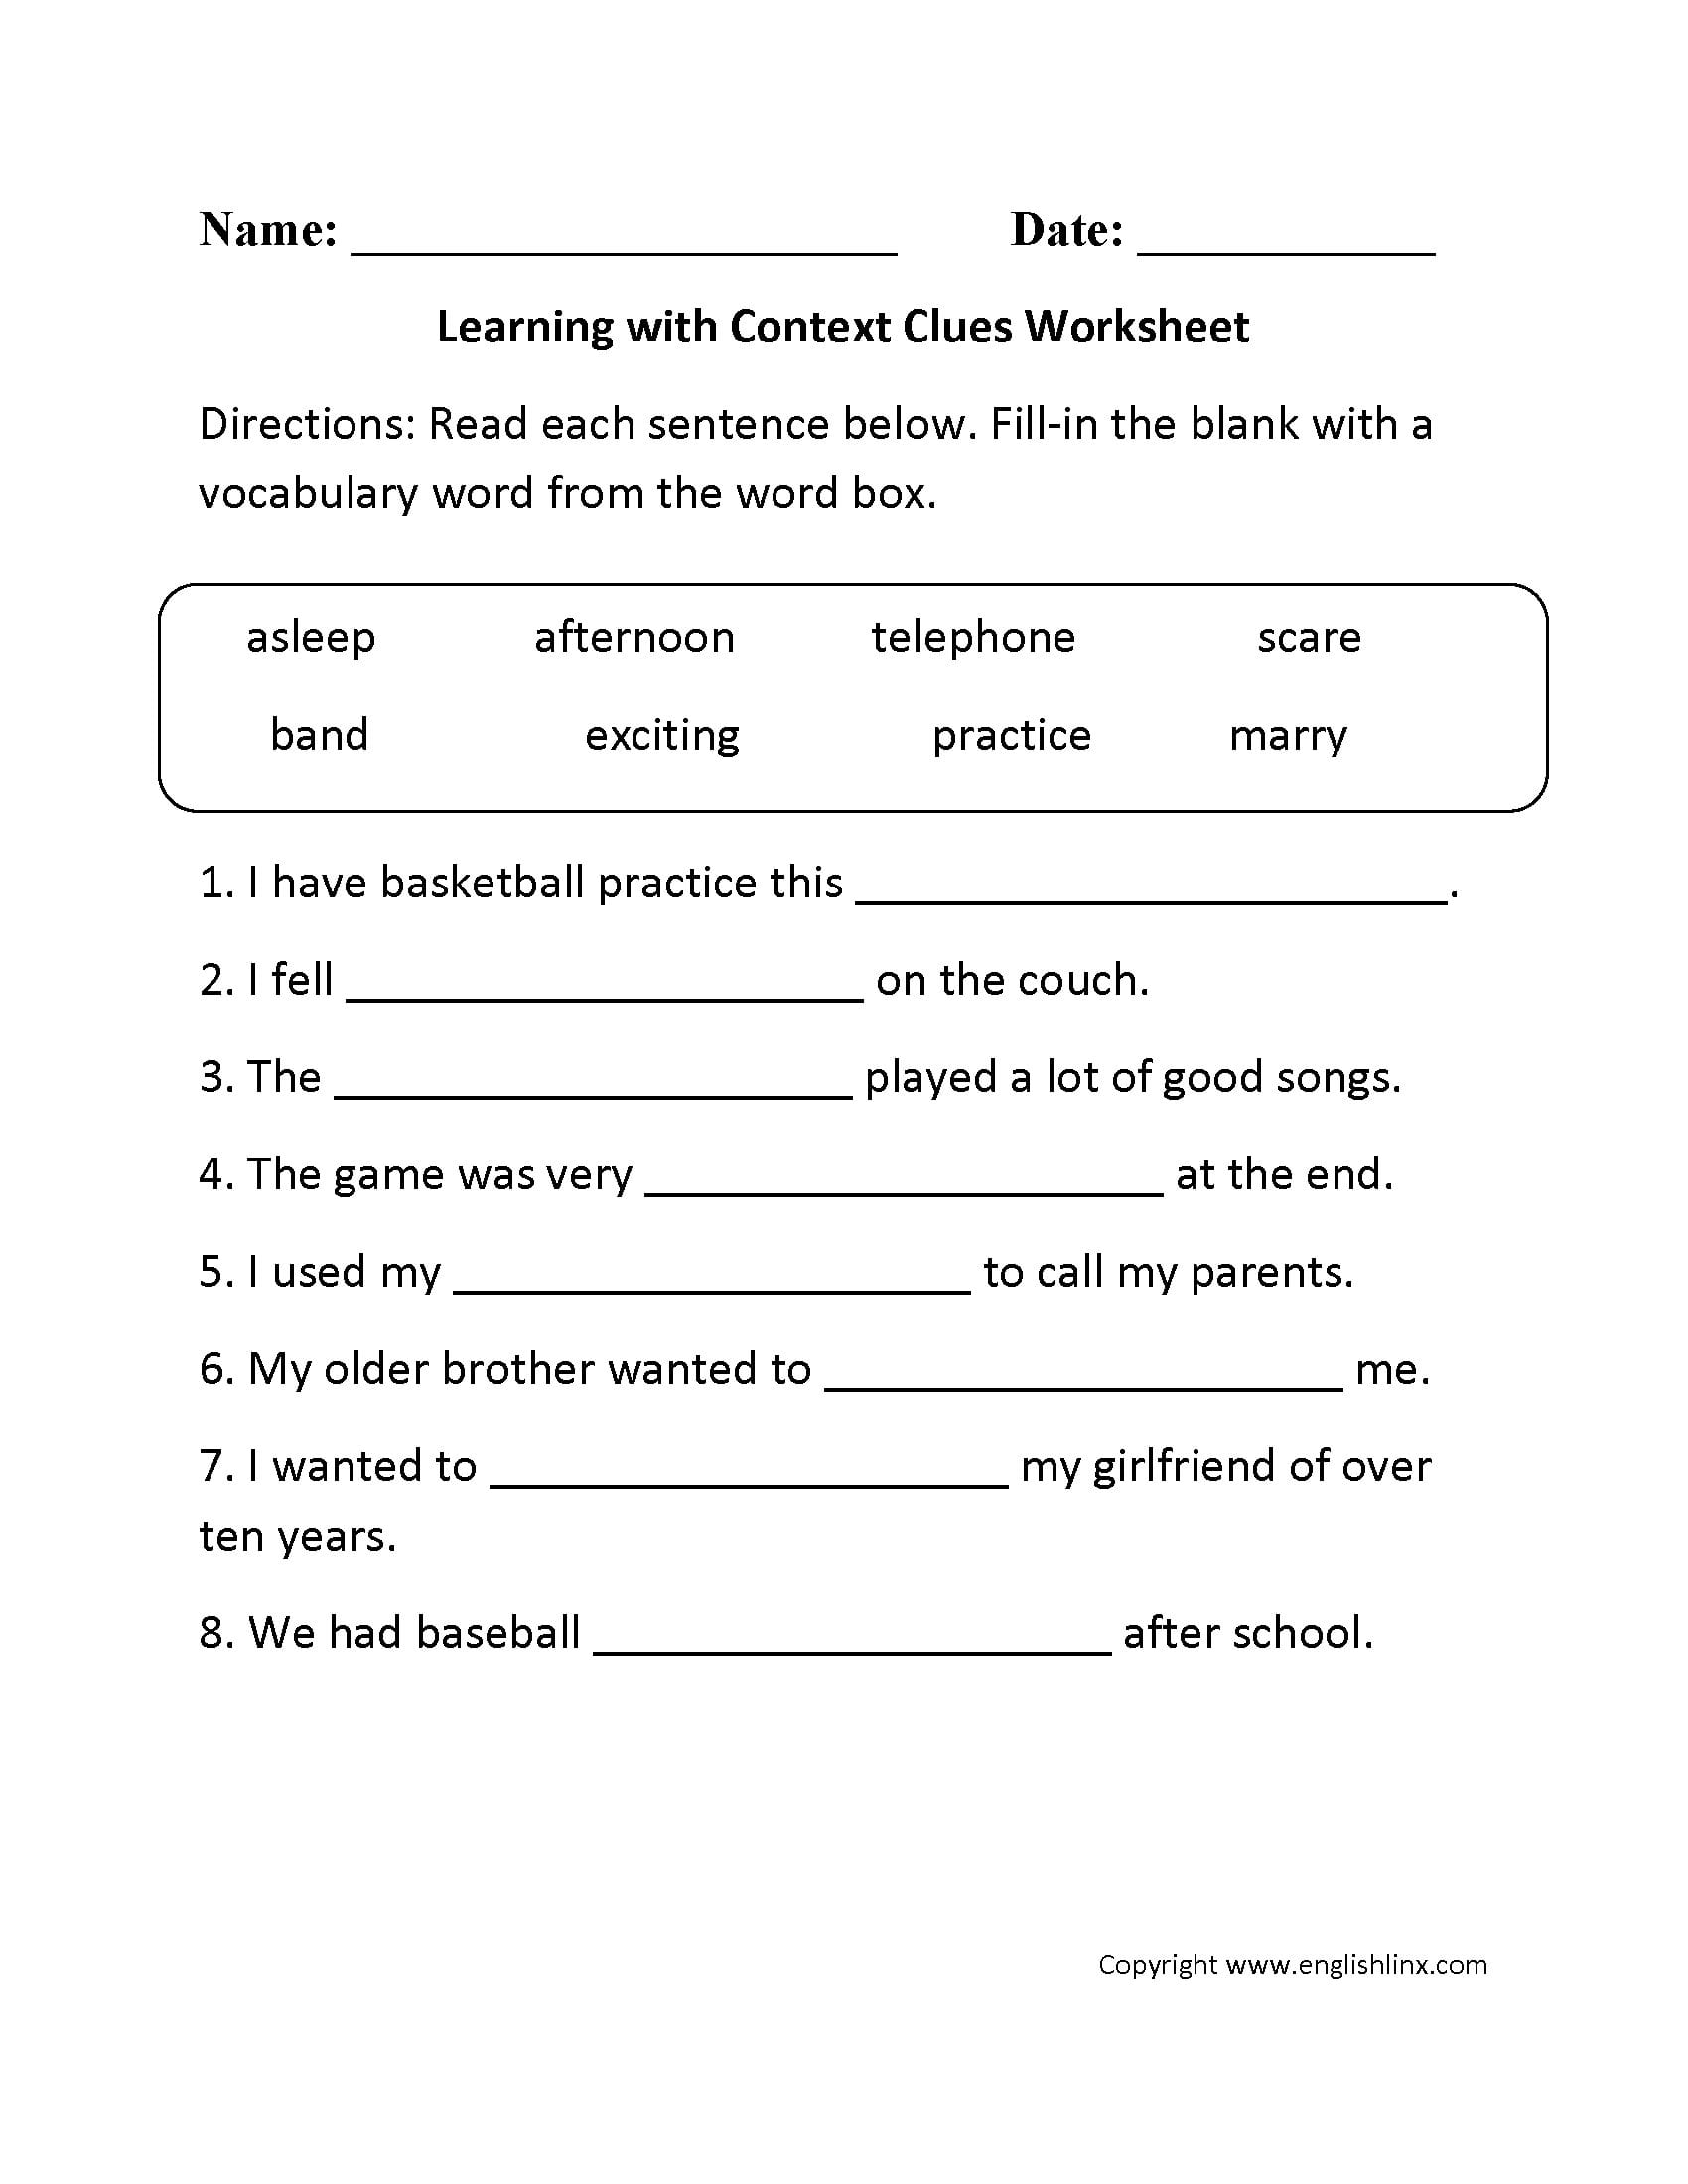 Reading Worksheets Context Clues Worksheets